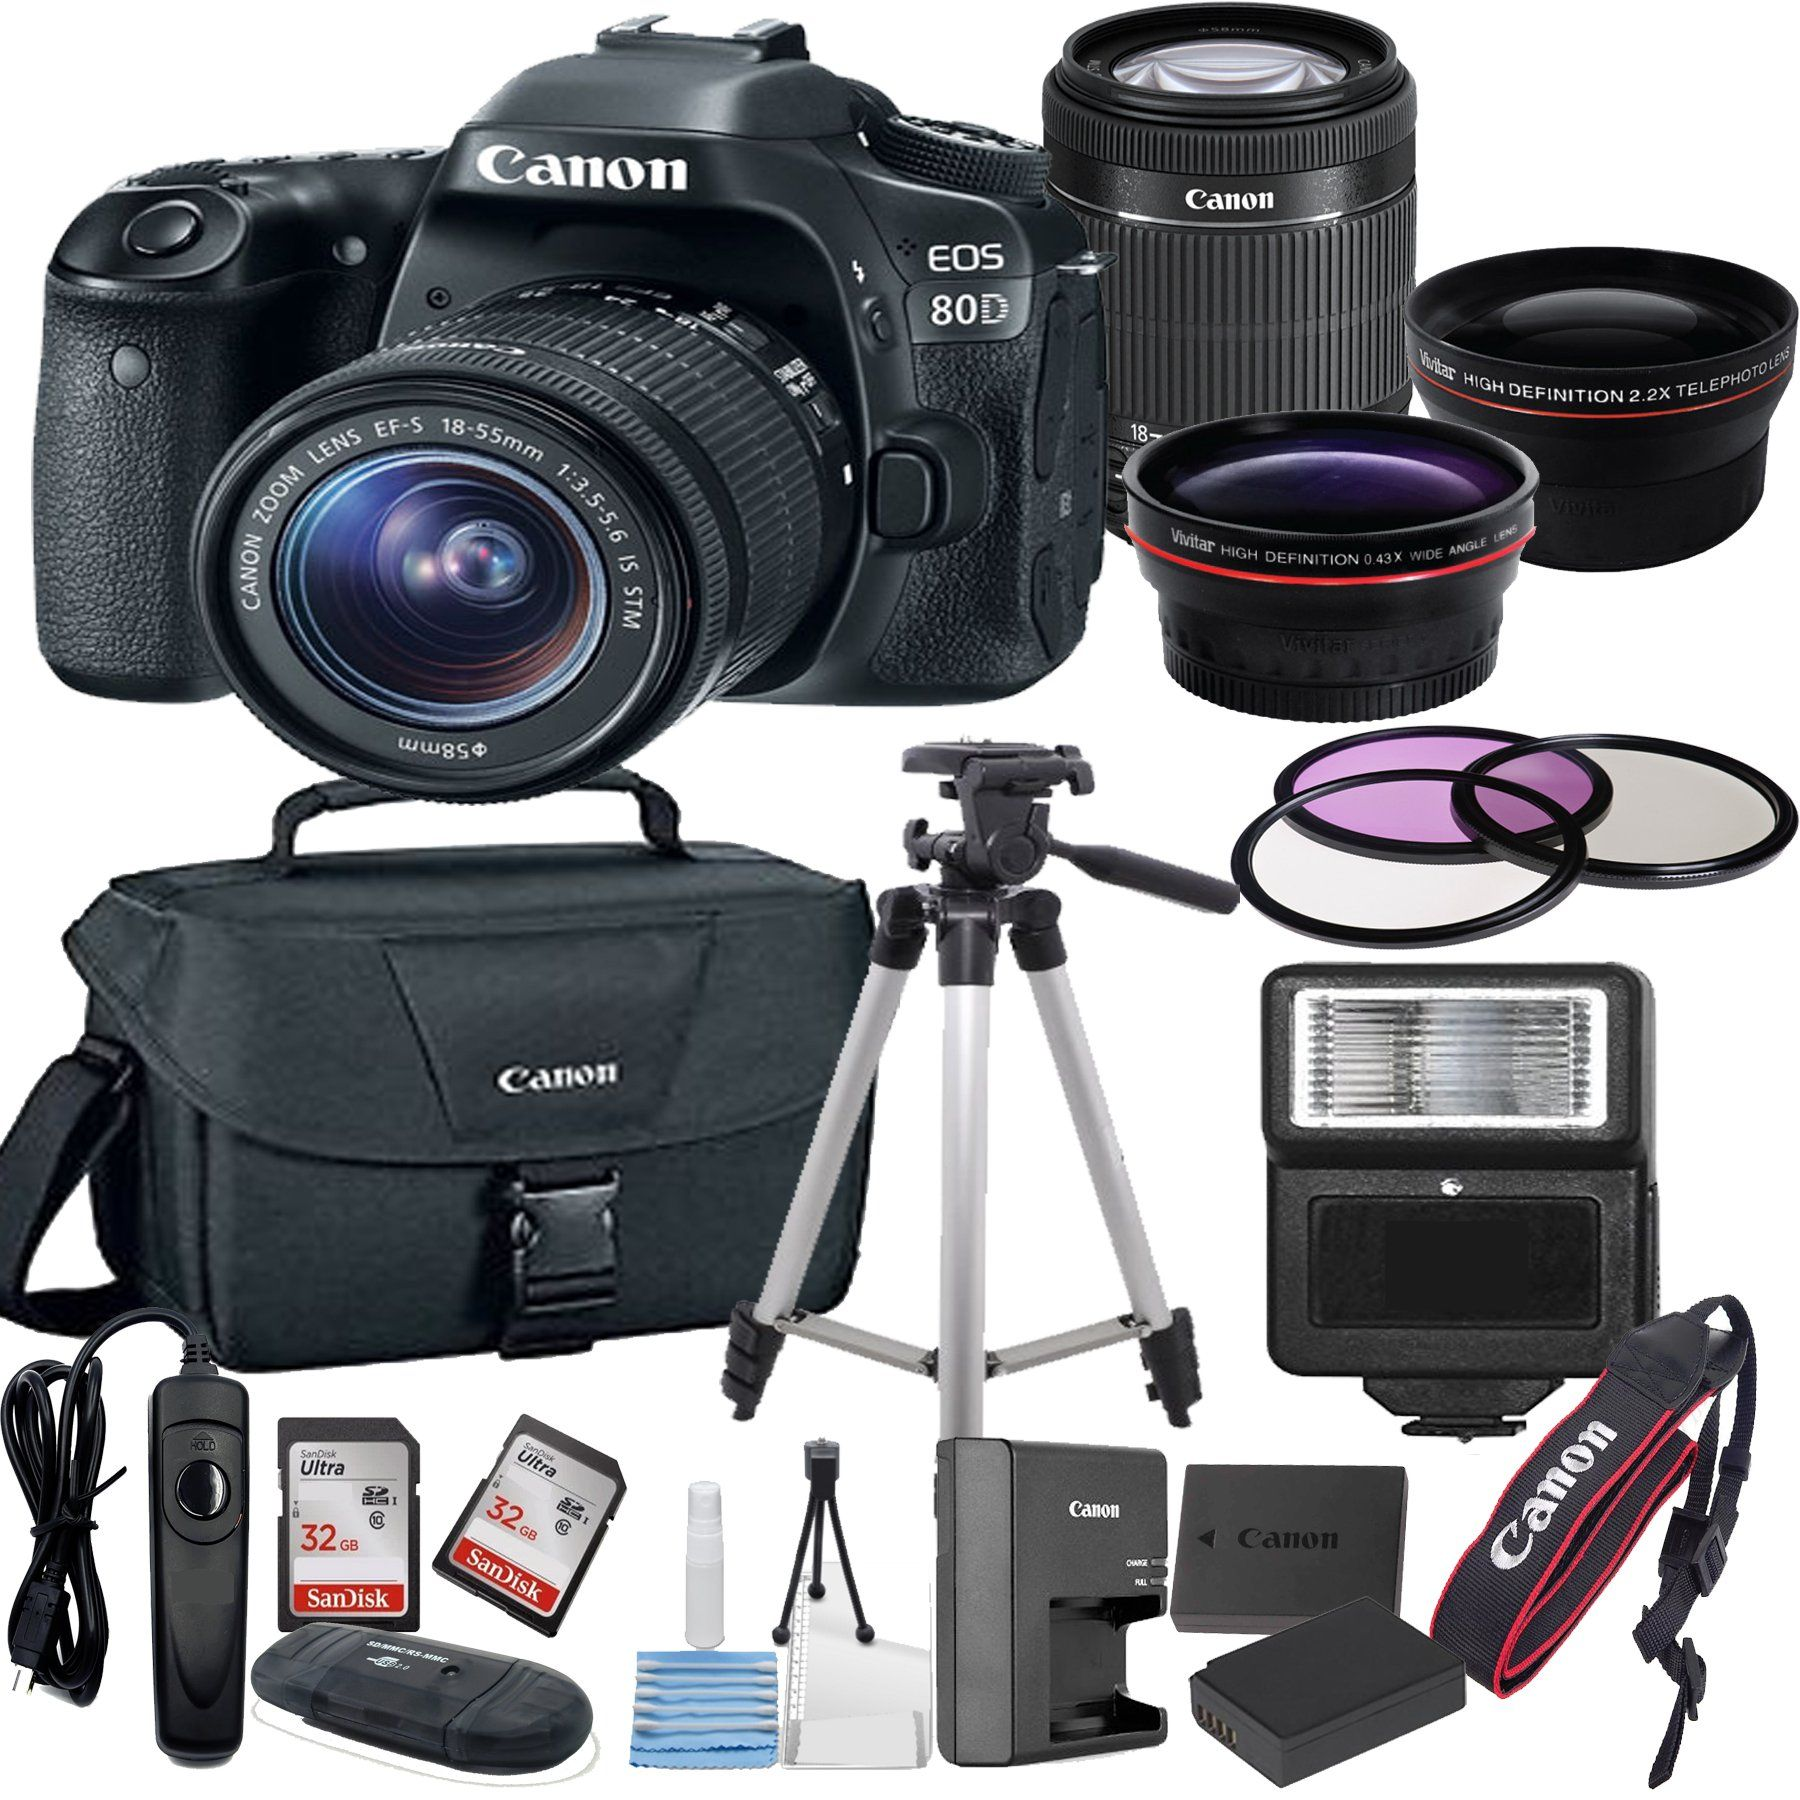 Canon EOS 80D Digital SLR Camera with EF-S 18-55mm Bundle includes ...